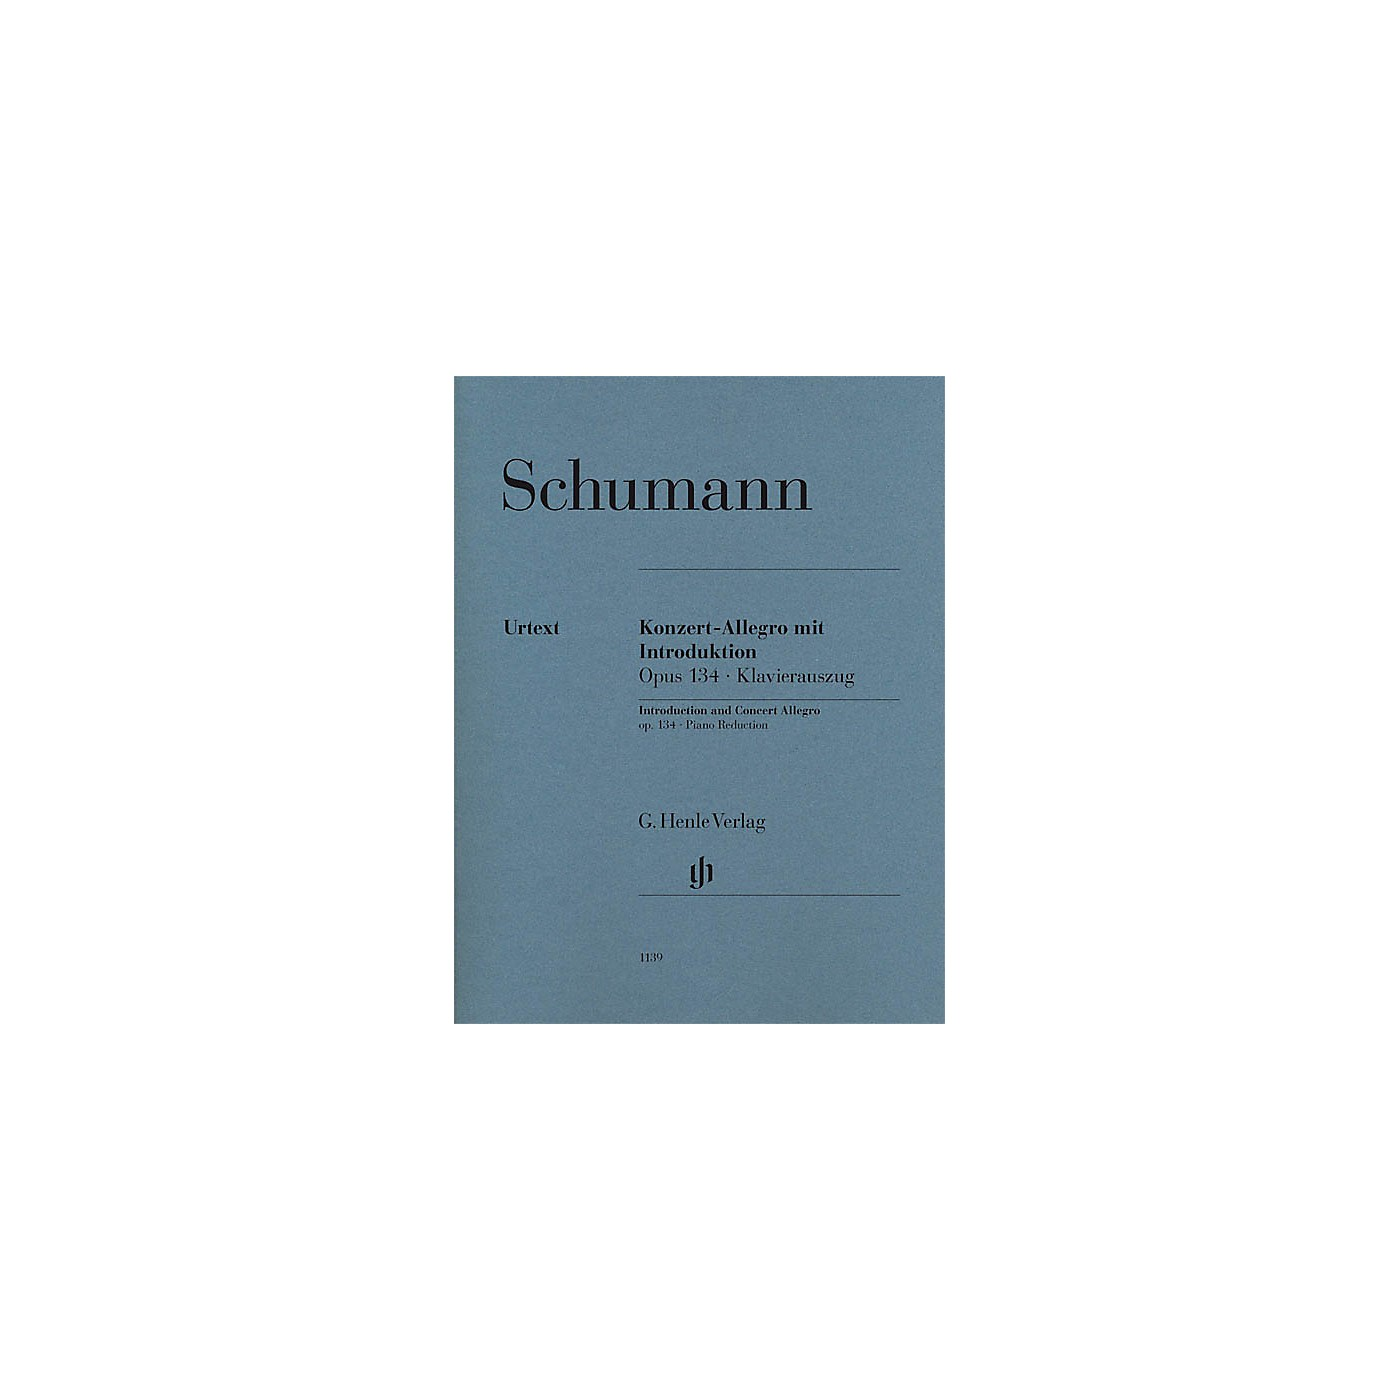 G. Henle Verlag Introduction and Concert Allegro for Piano and Orchestra, Op. 134 Henle Music Softcover by Schumann thumbnail